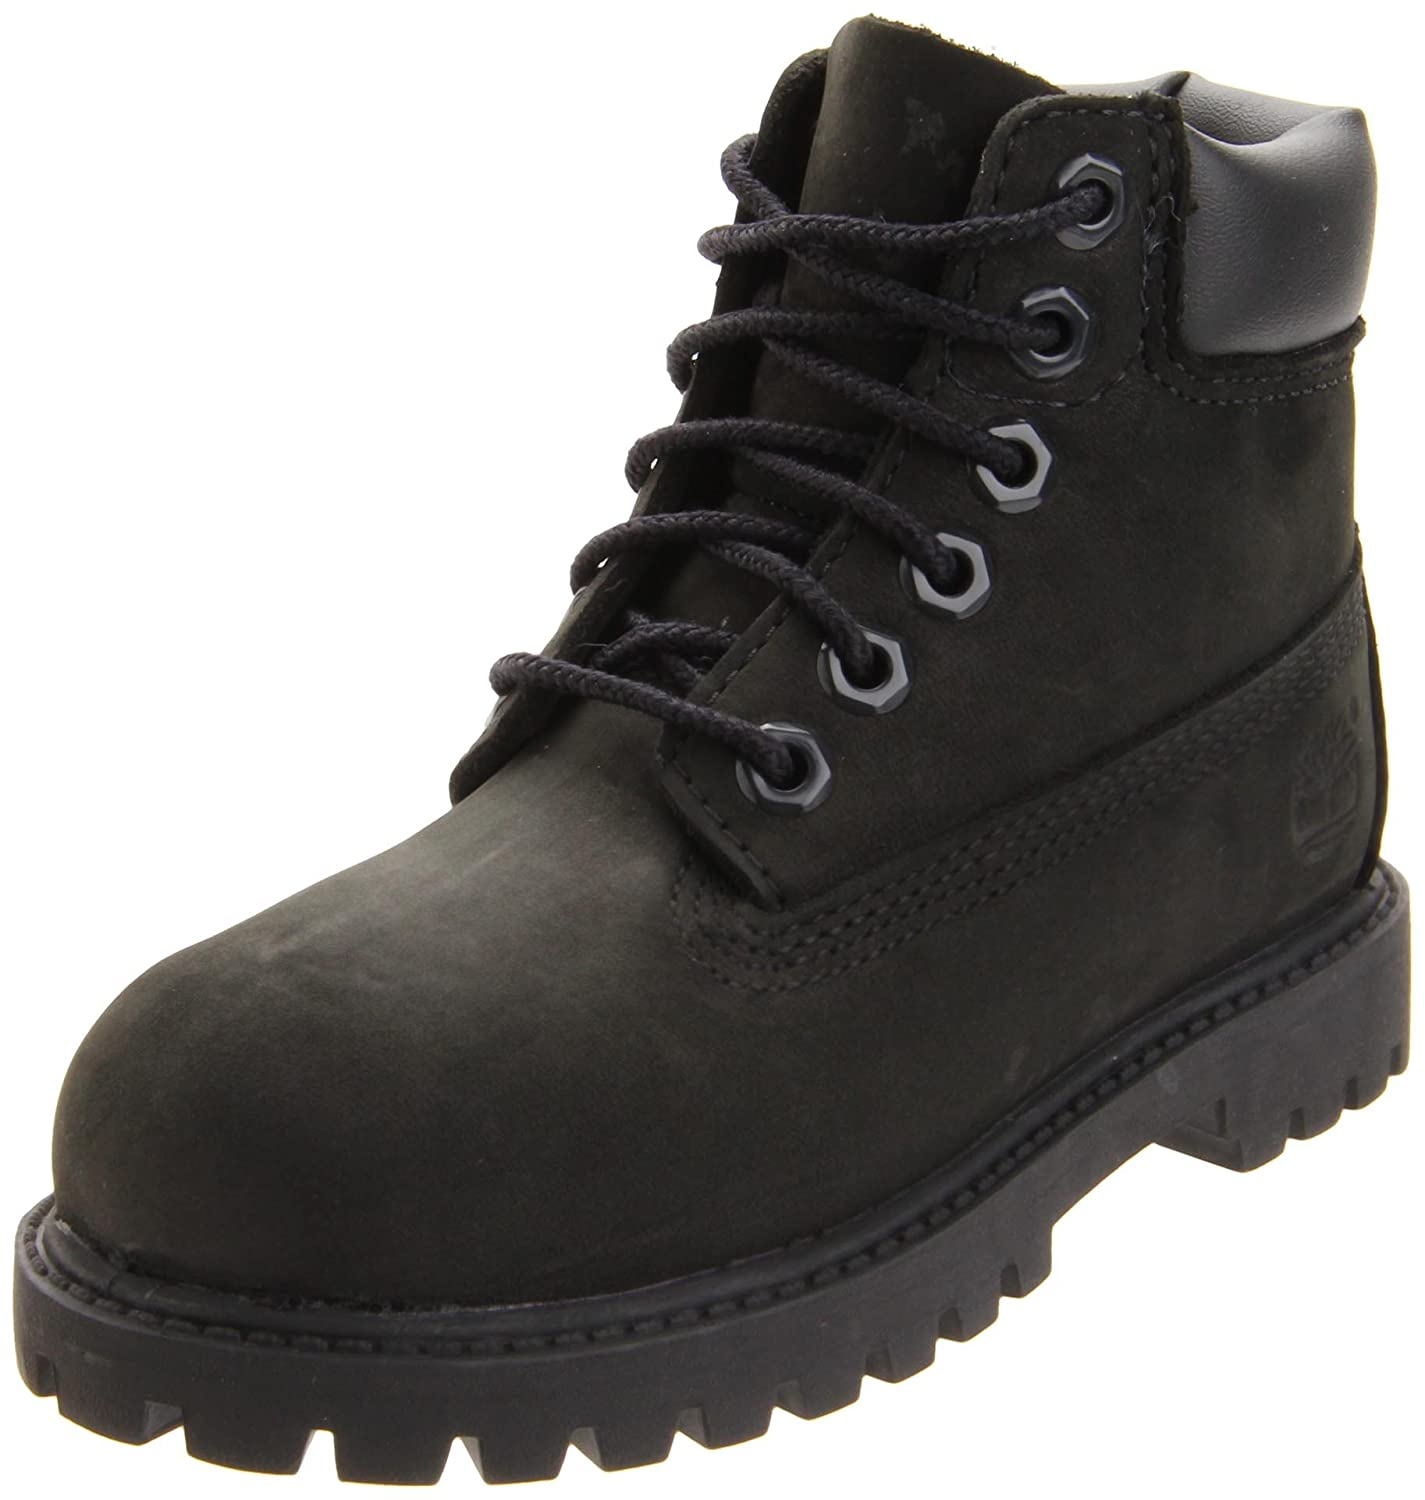 where can i get black timberland boots